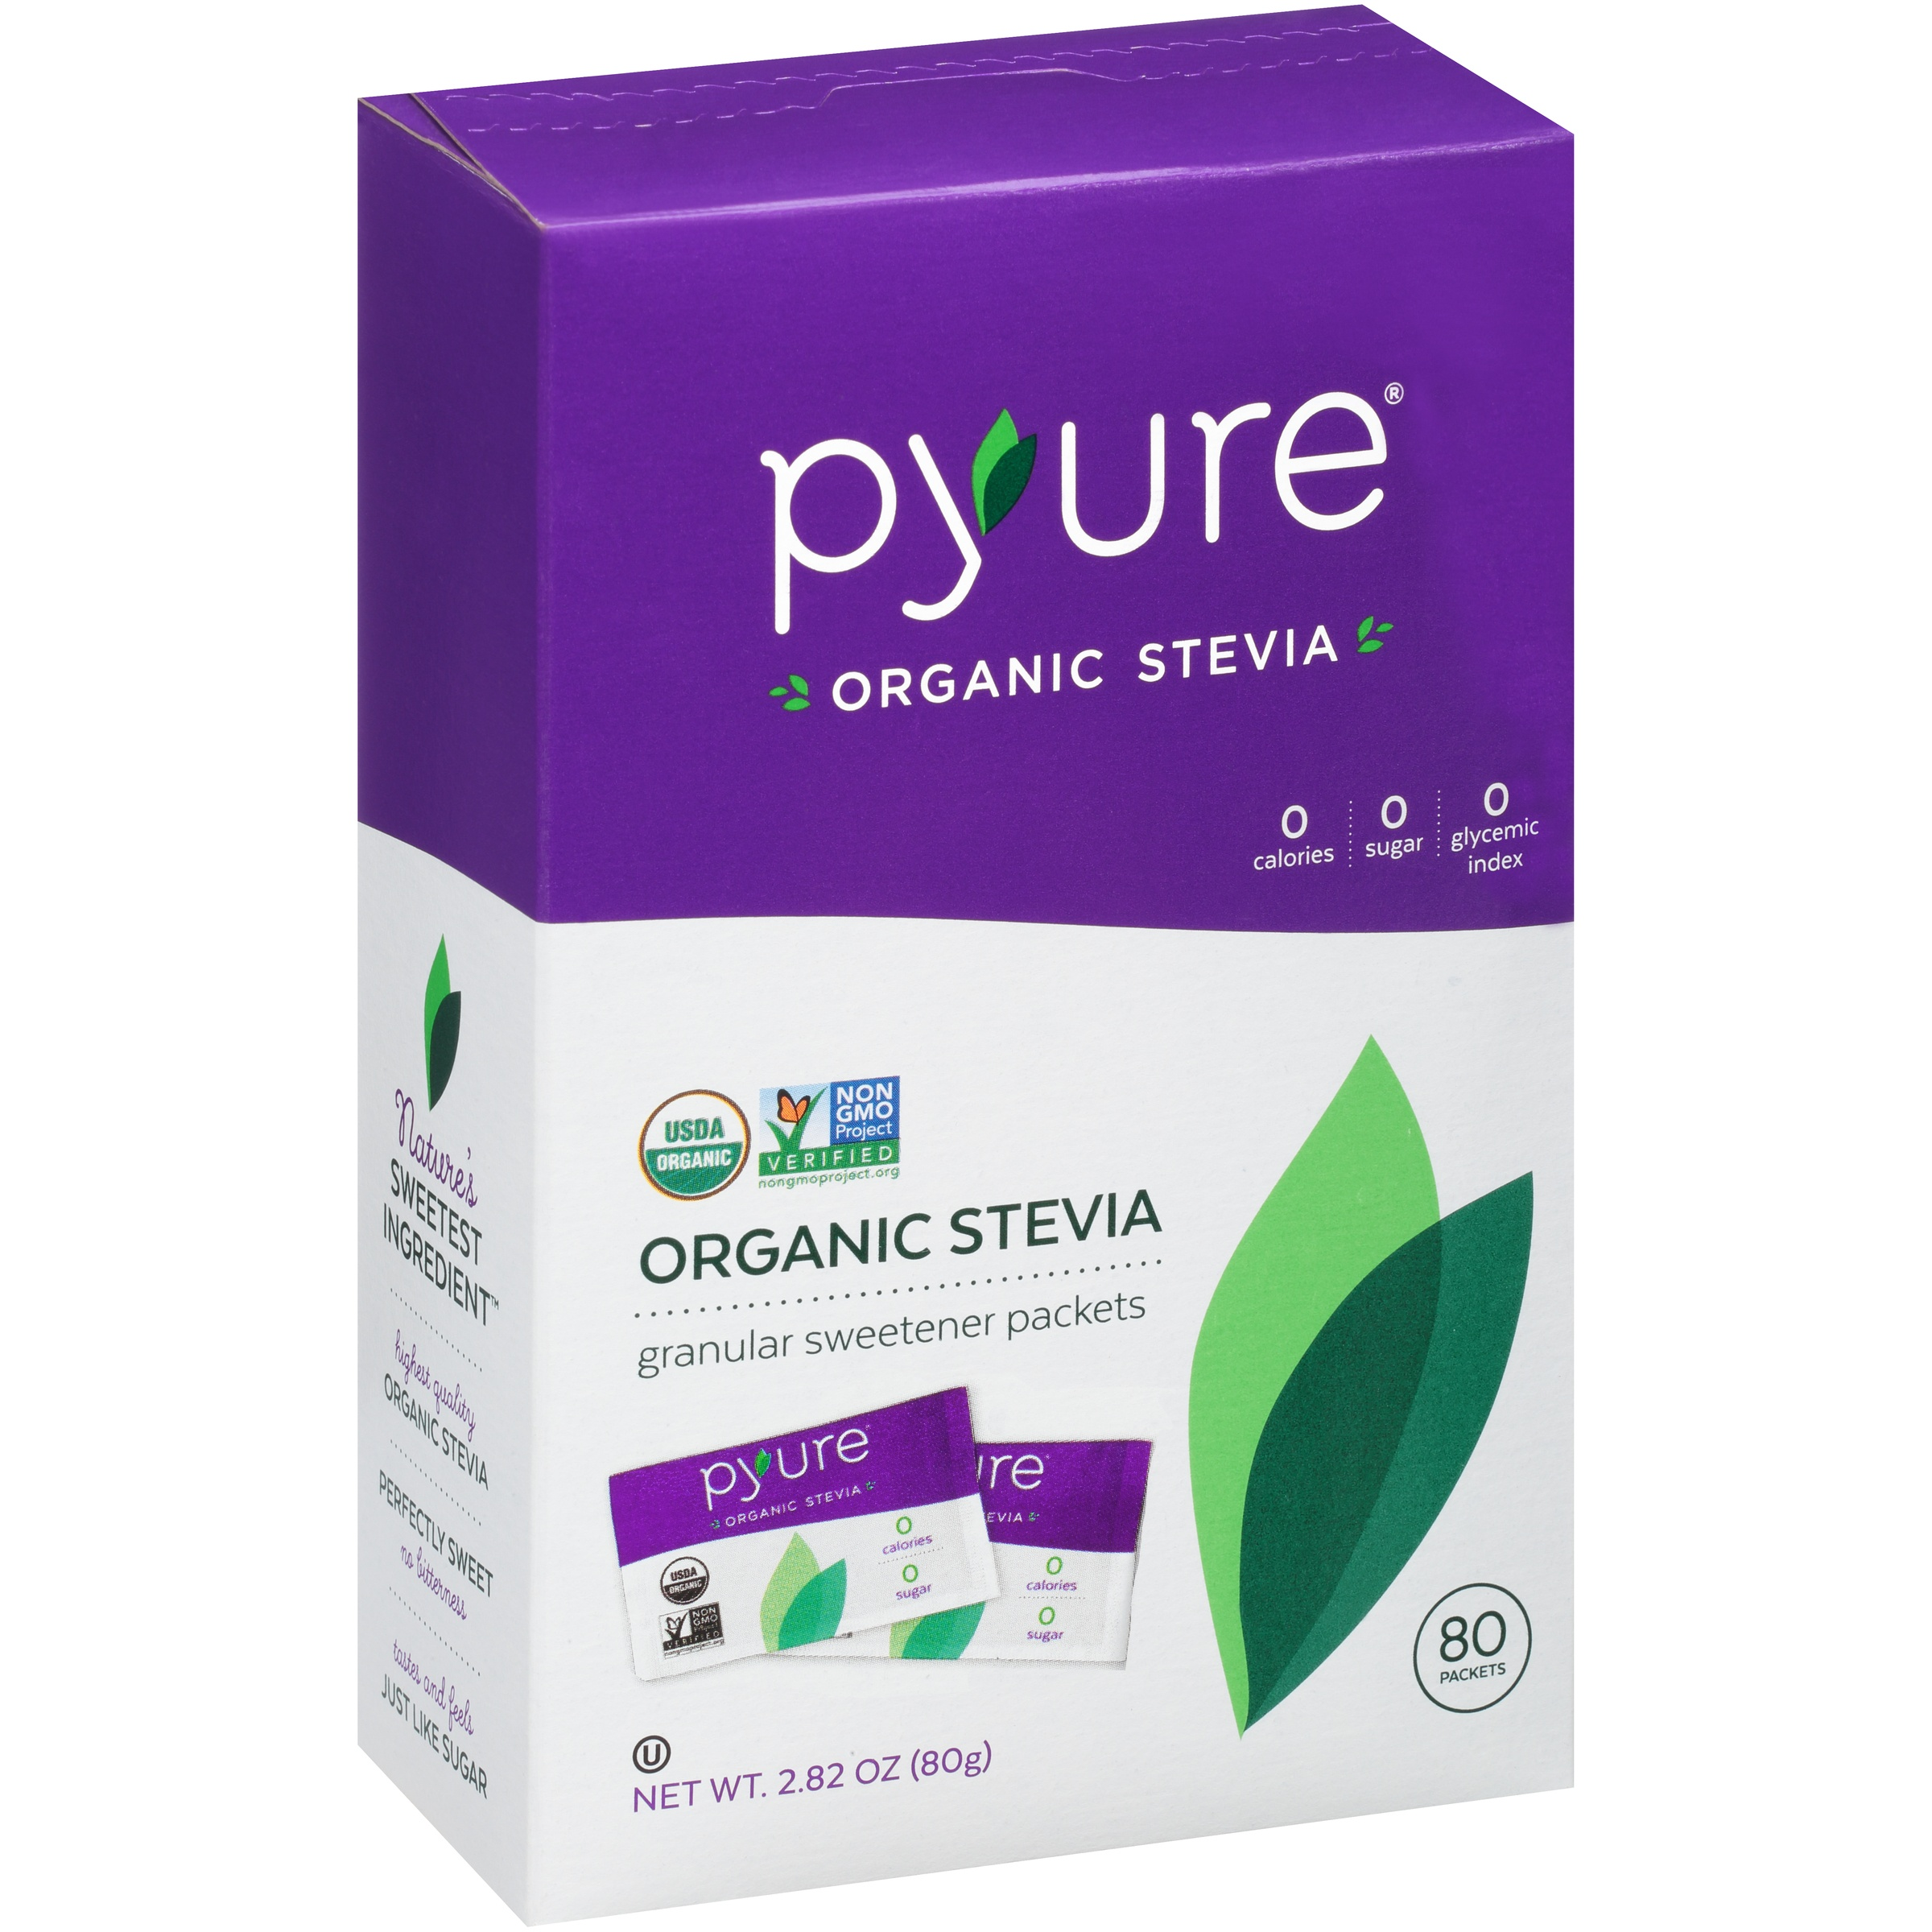 Pyure Organic Stevia Granular Sweetener Packets, 80 count, 2.82 oz